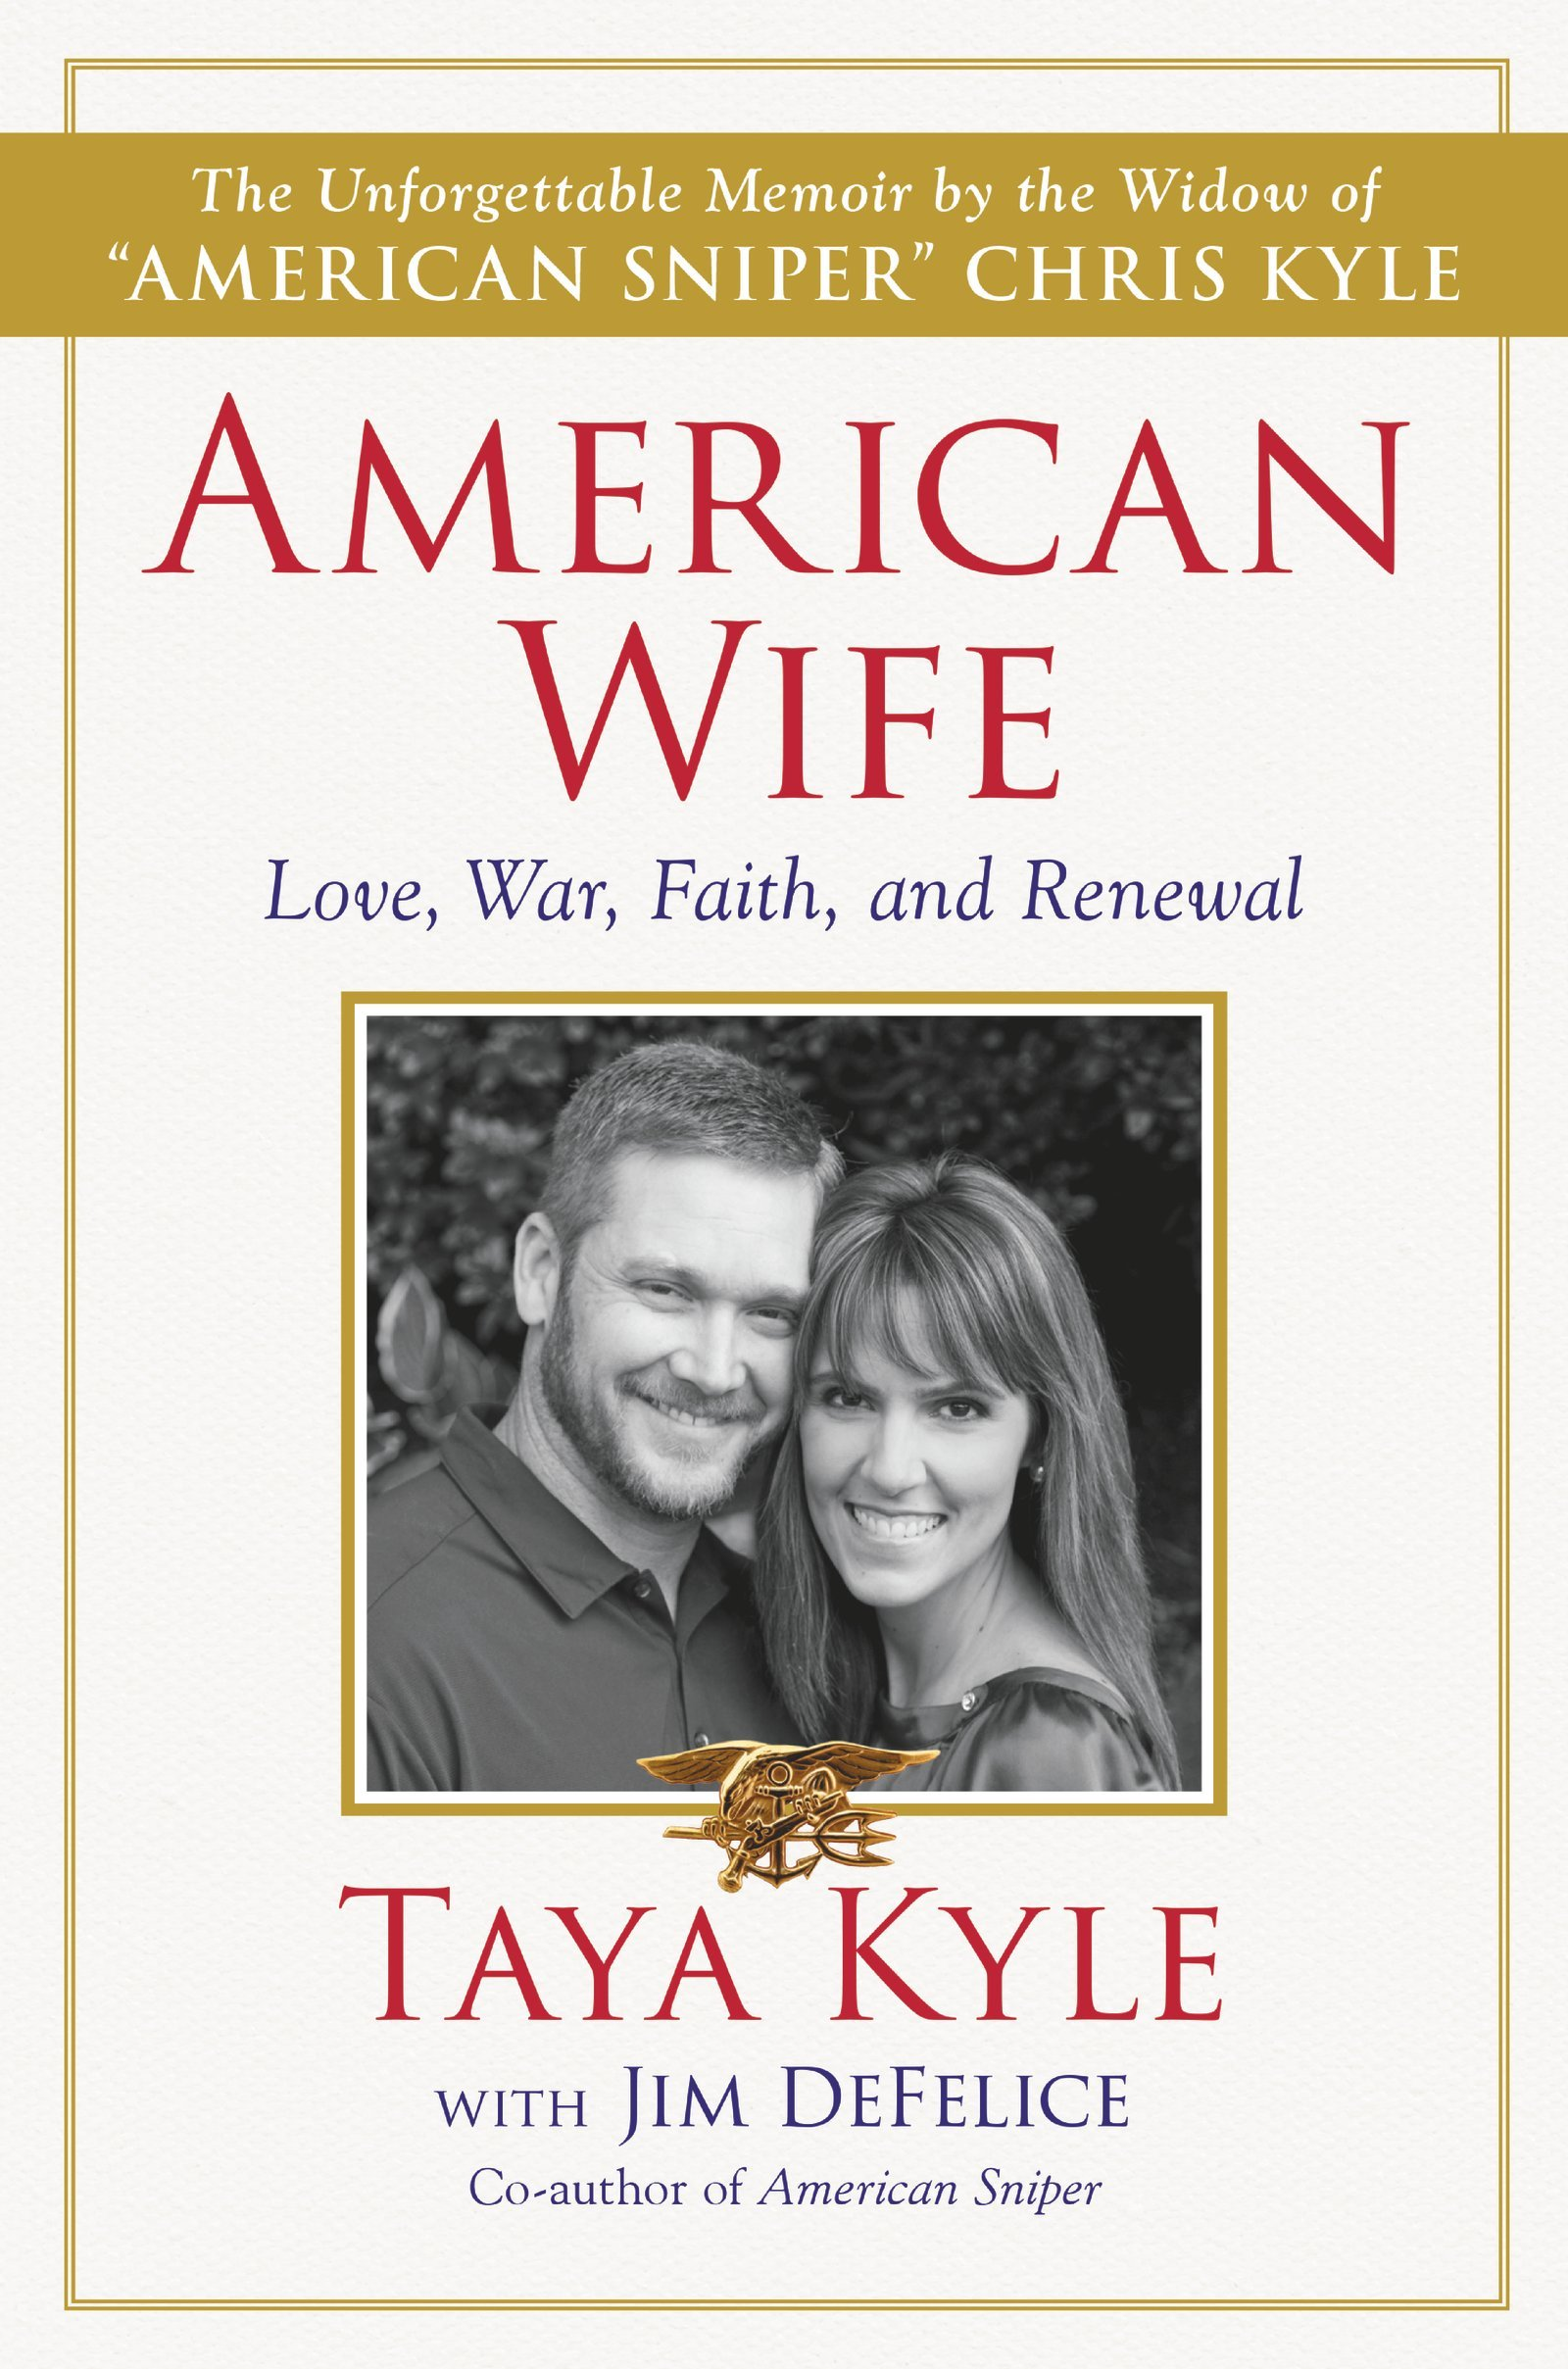 American Sniper's Wife Will Release Memoir On Life As A Military Spouse